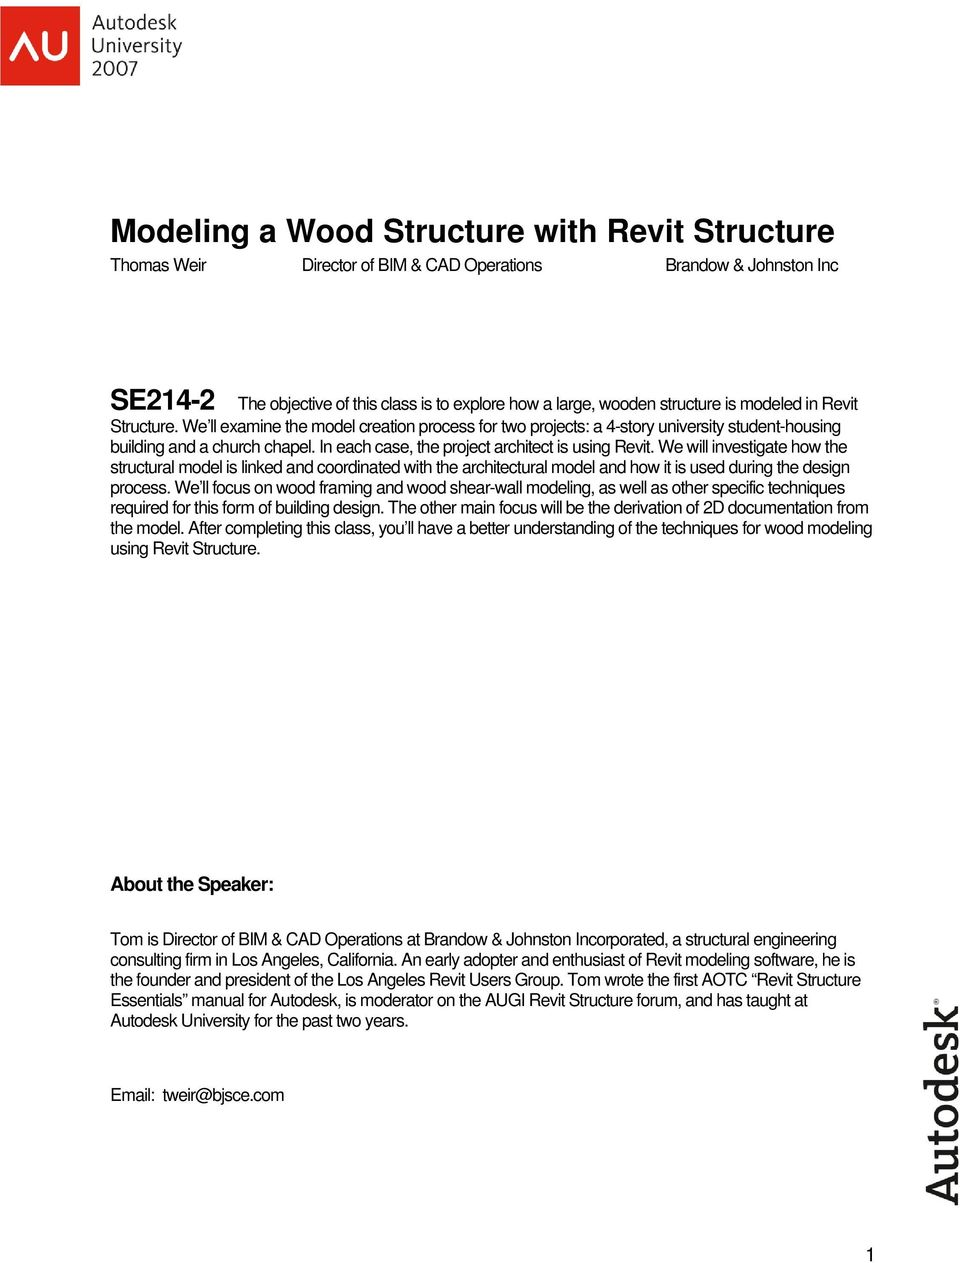 Modeling a Wood Structure with Revit Structure - PDF